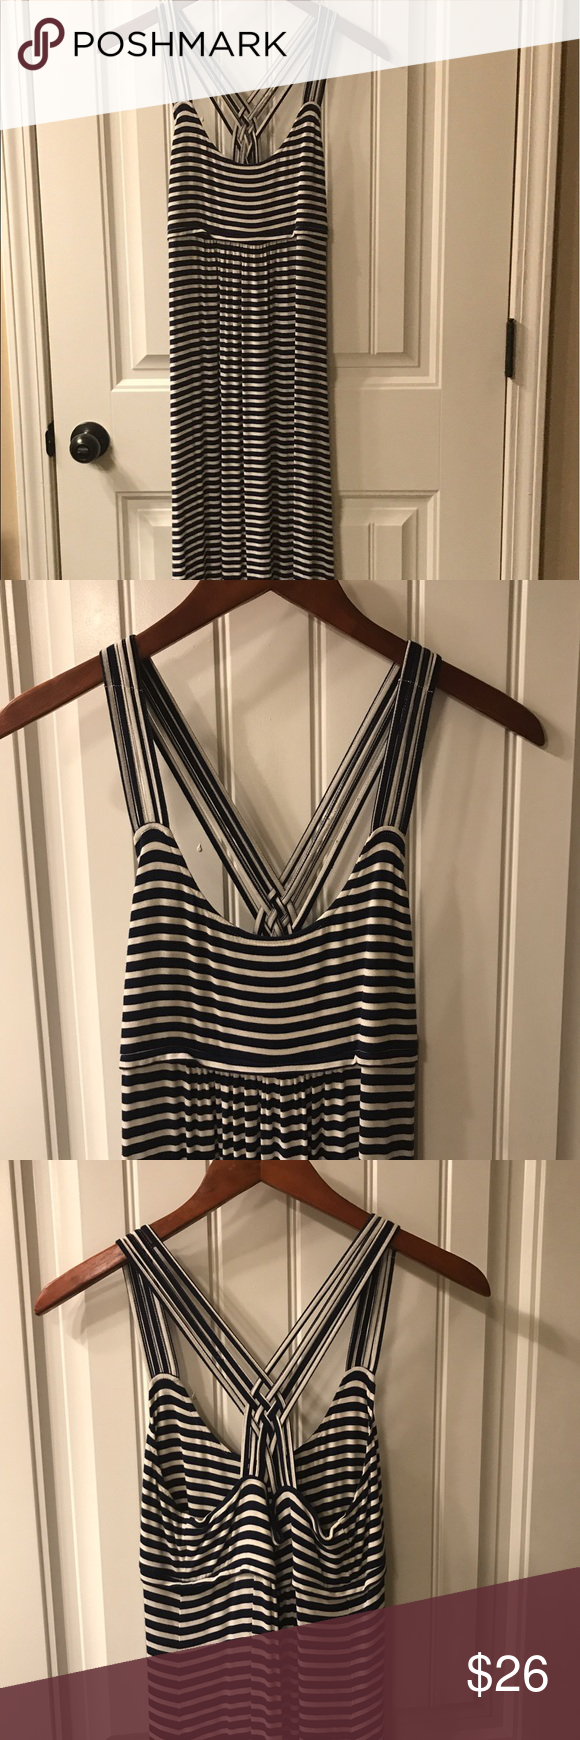 Calvin Klein size 6 navy/white striped maxi dress This is an amazing maxi dress that is 100% cotton so it's machine washable and super comfortable. In true Calvin Klein design this dress is simple but classic making it an everyday favorite. Size 6 and from below the bust to the bottom this dress measures 43 inches to the floor. Calvin Klein Dresses Maxi